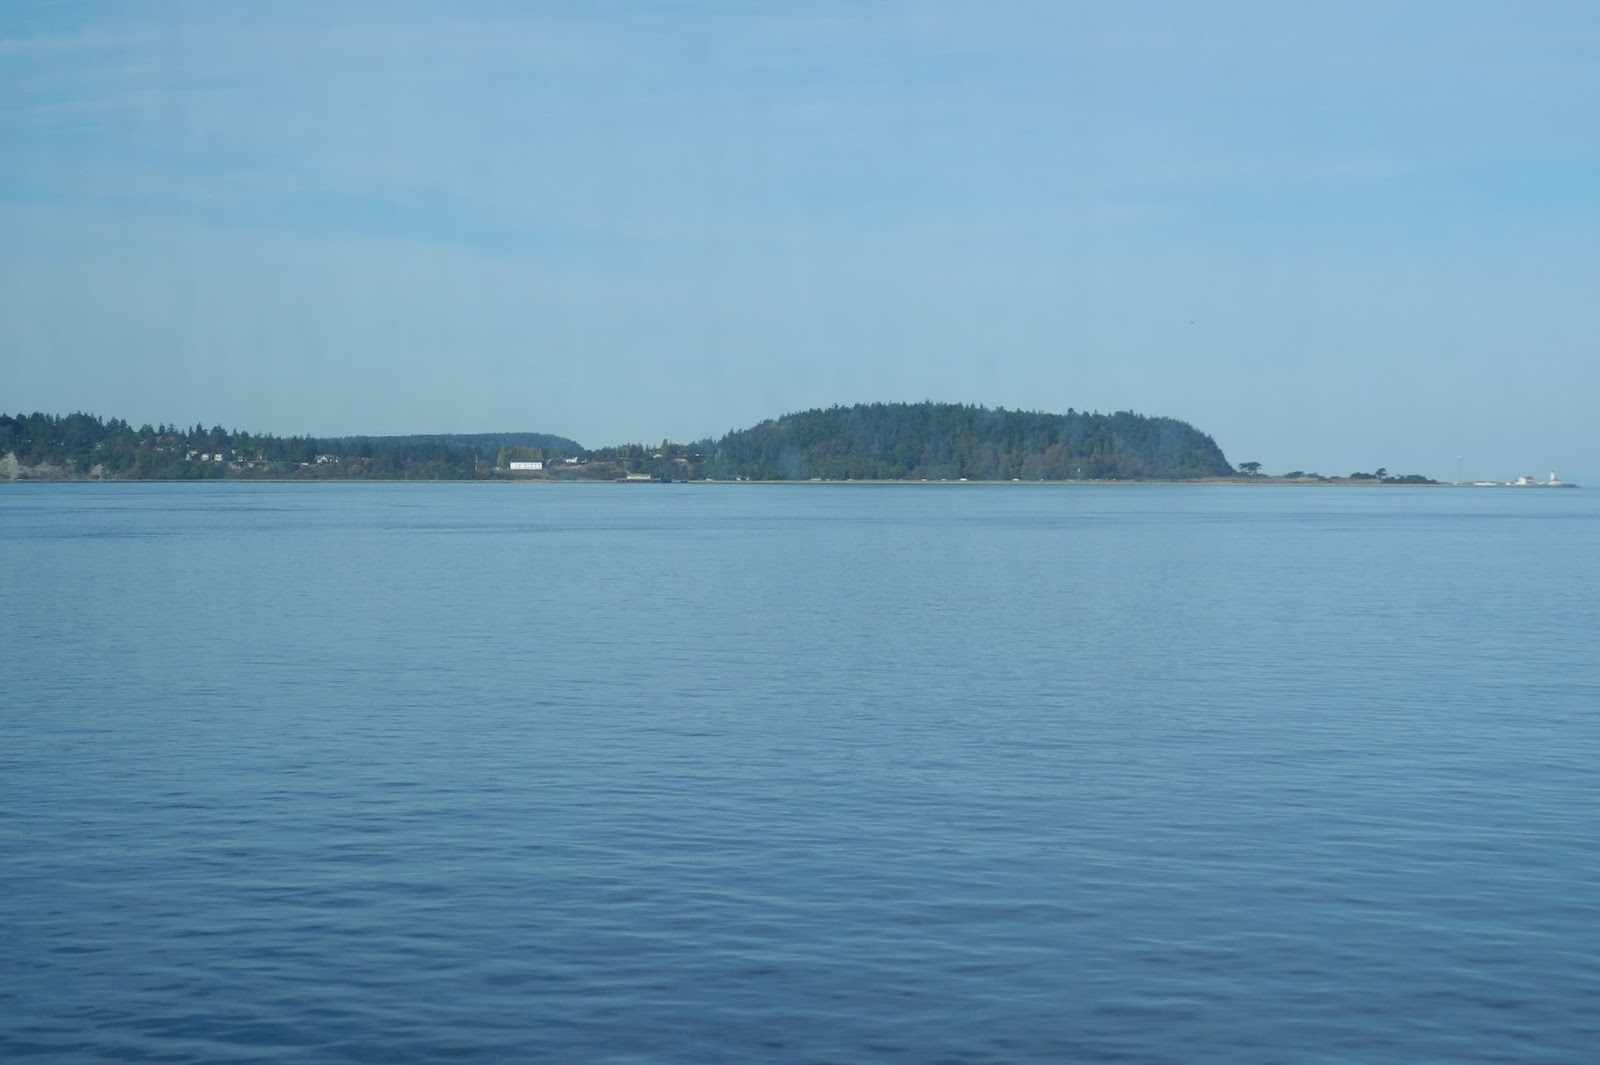 Last Ferry From Whidbey Island